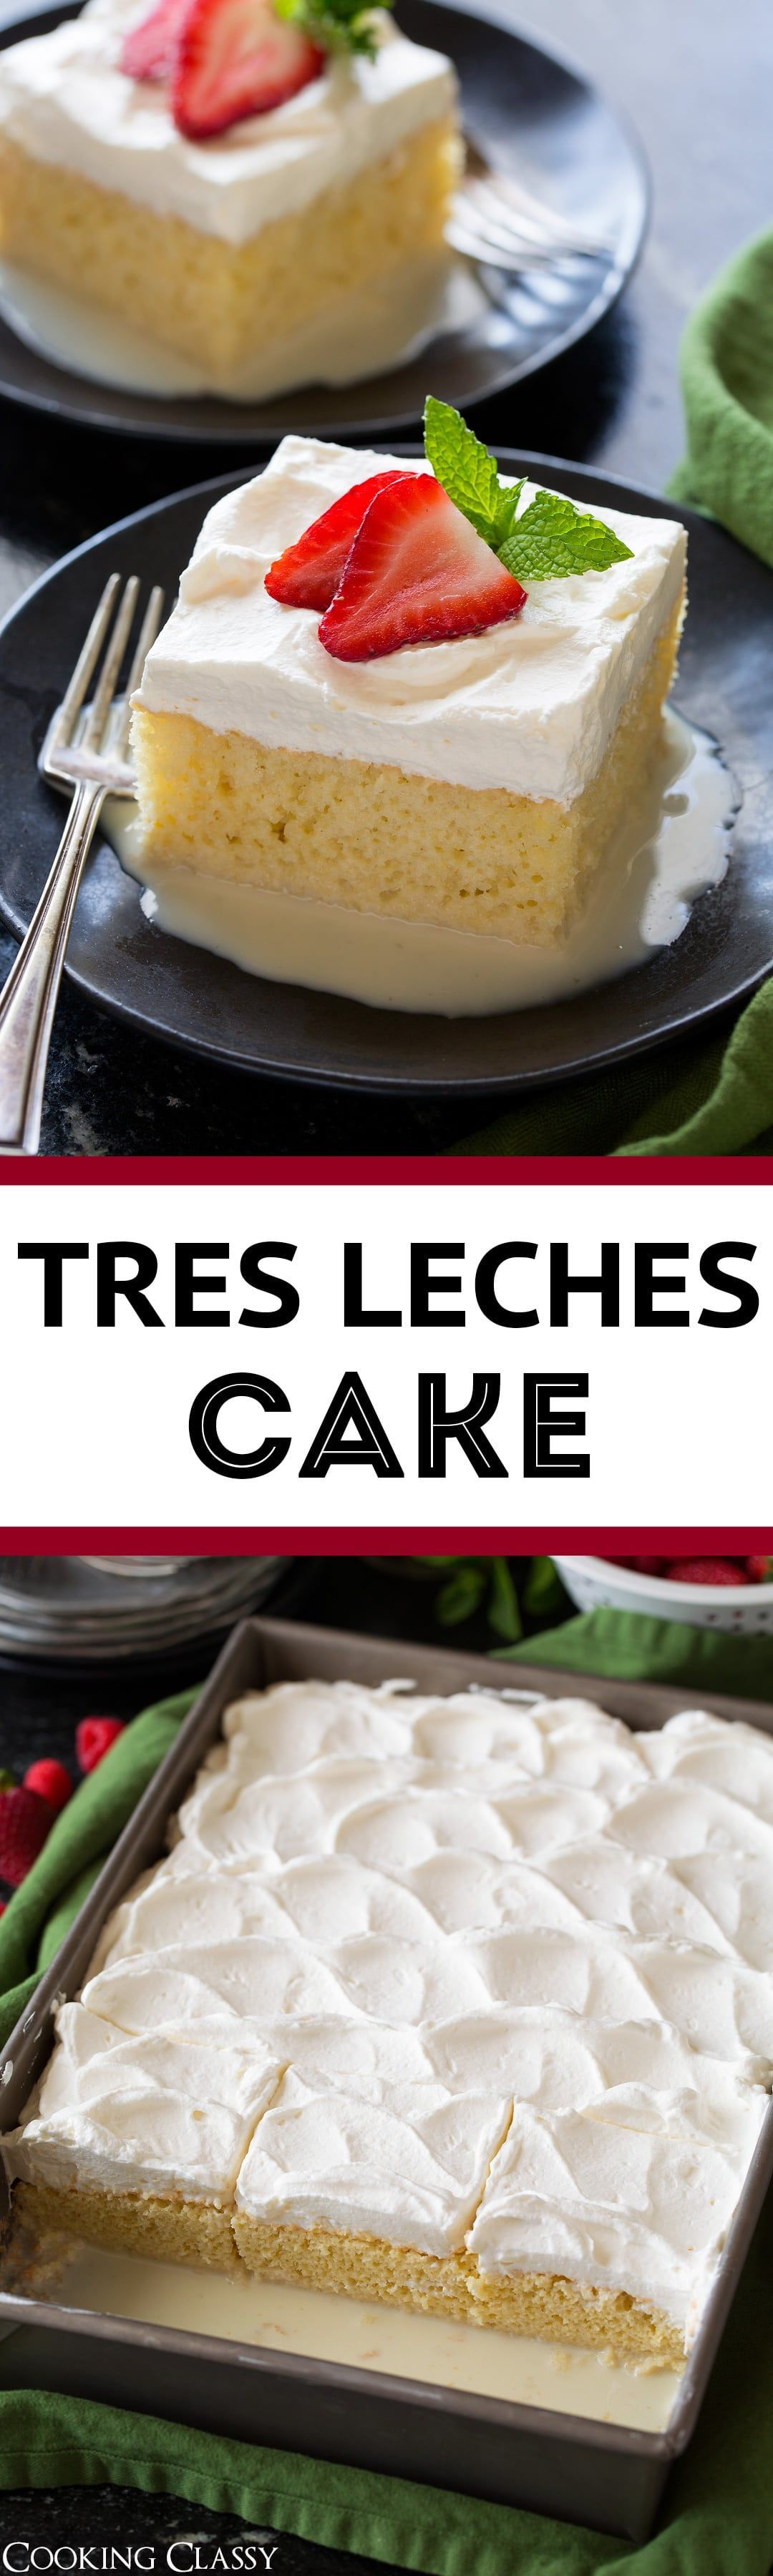 Tres Leches Cake - one of the BEST Mexican desserts! It a deliciously rich and moist, milk soaked cake that always gets compliments every time I make it. It's sweet and refreshing and even picky eaters love this tempting cake! Leches Cake - one of the BEST Mexican desserts! It a deliciously rich and moist, milk soaked cake that always gets compliments every time I make it. It's sweet and refreshing and even picky eaters love this tempting cake!